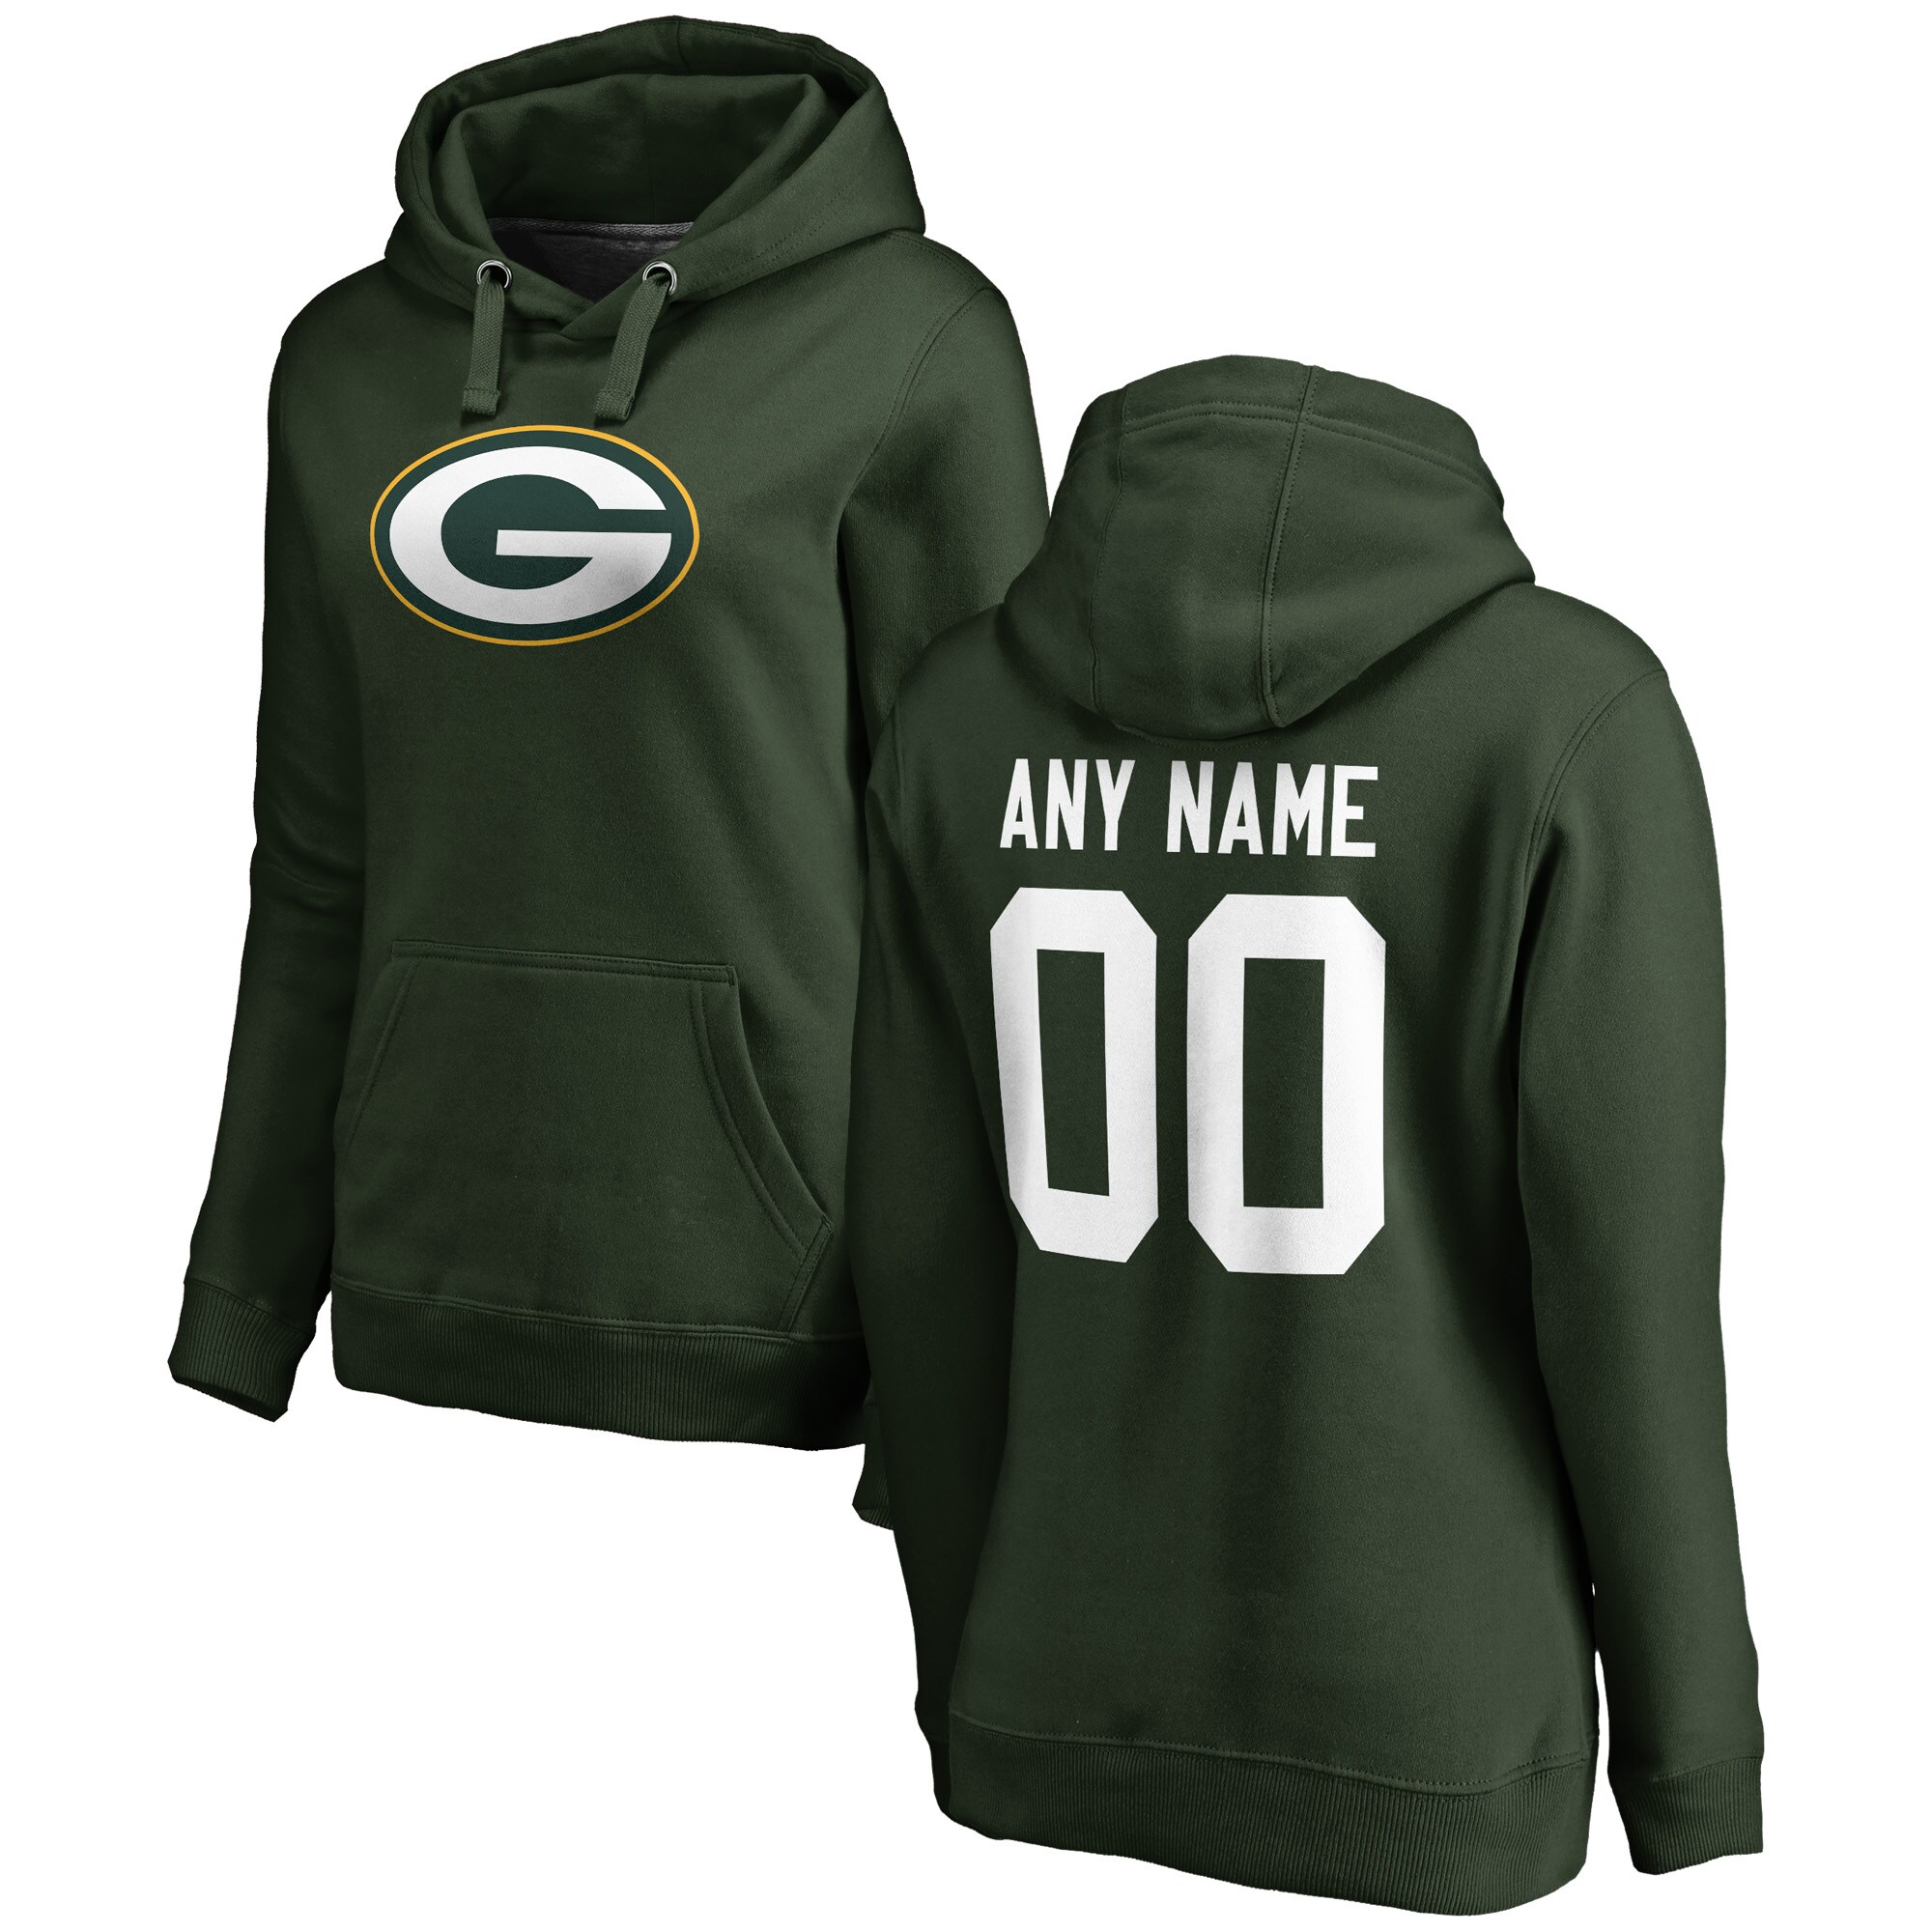 Green Bay Packers NFL Pro Line Women's Any Name & Number Logo Personalized Pullover Hoodie - Green